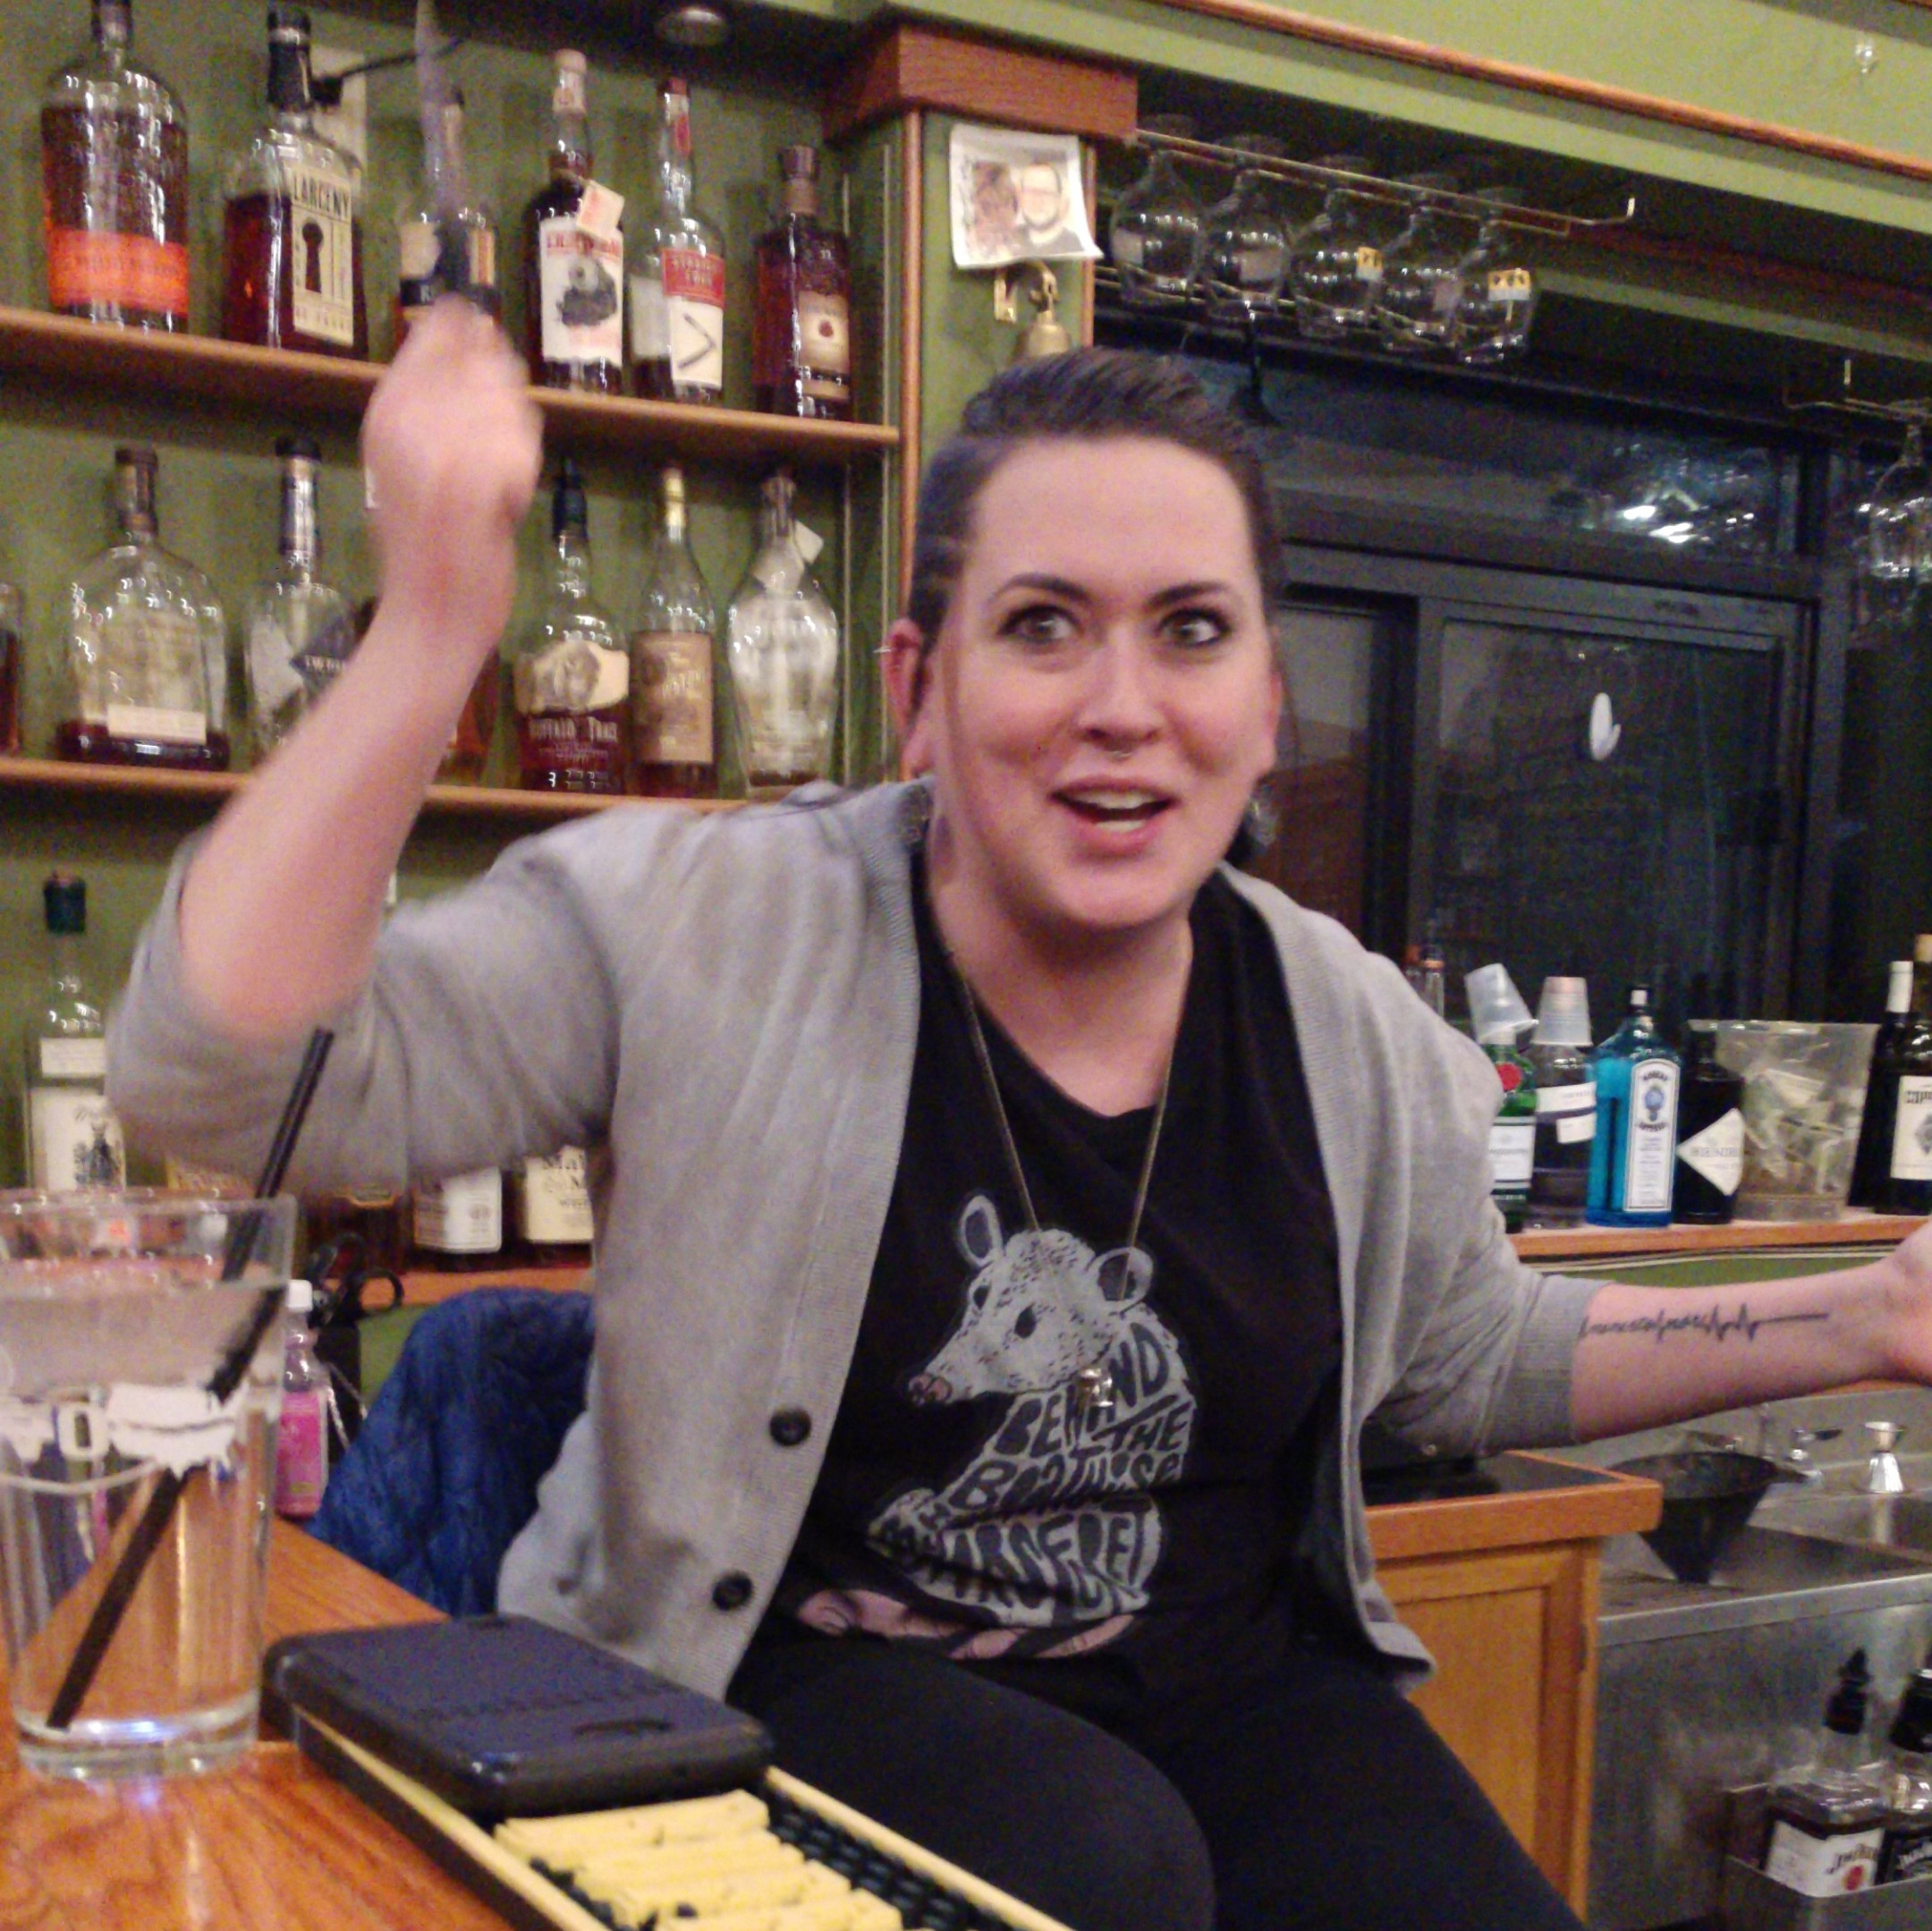 Candi - Bartender, Protector of All That is Good and Holy